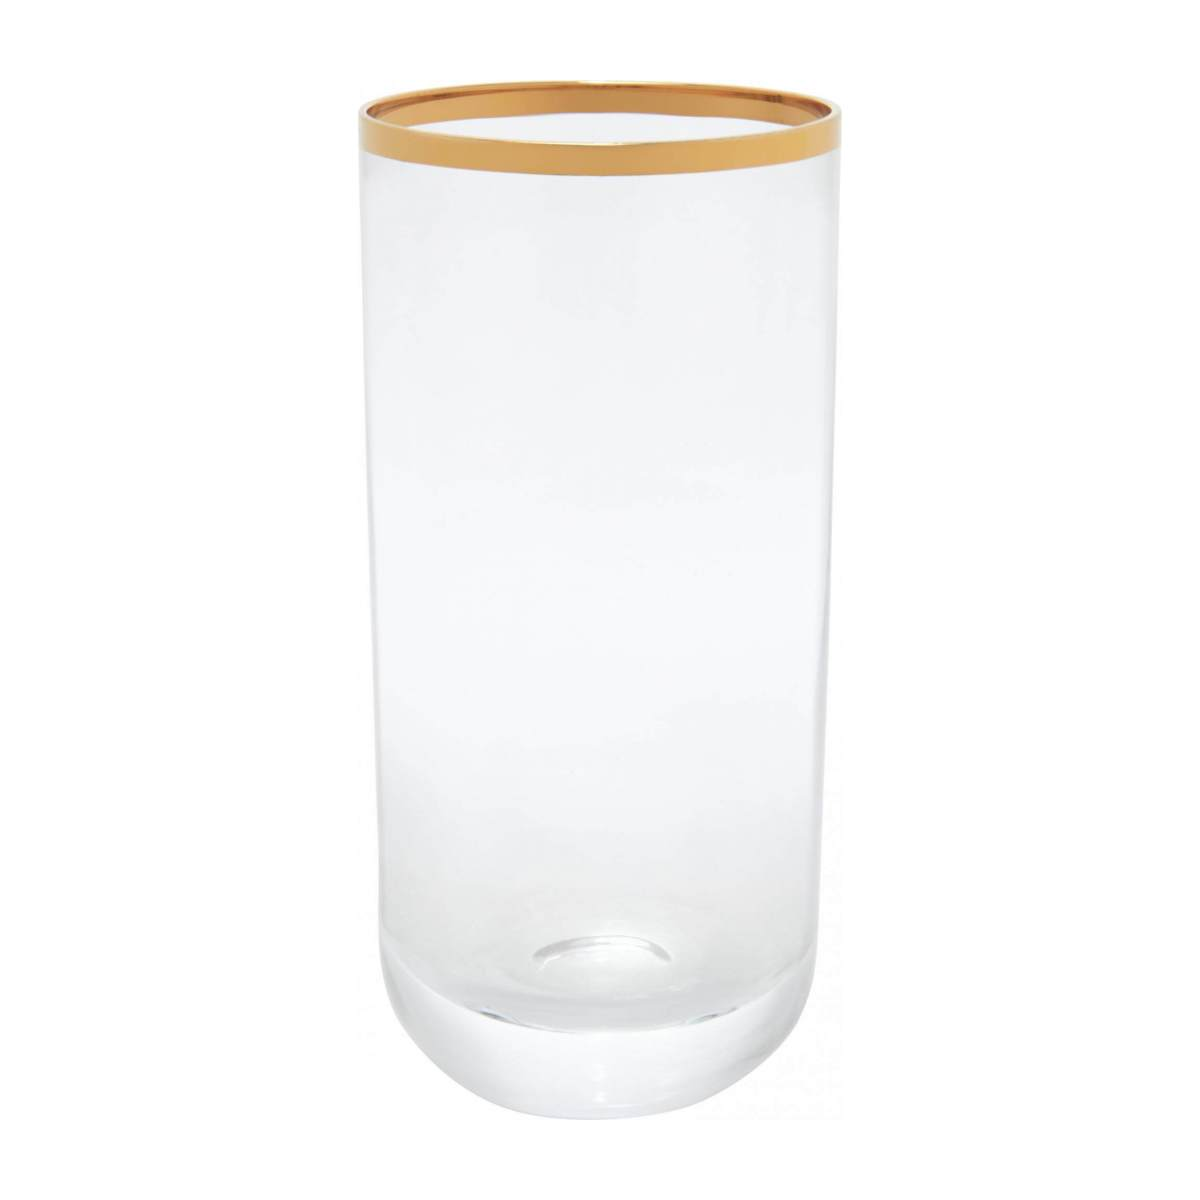 Tumbler made of glass haut, with gold edge n°1